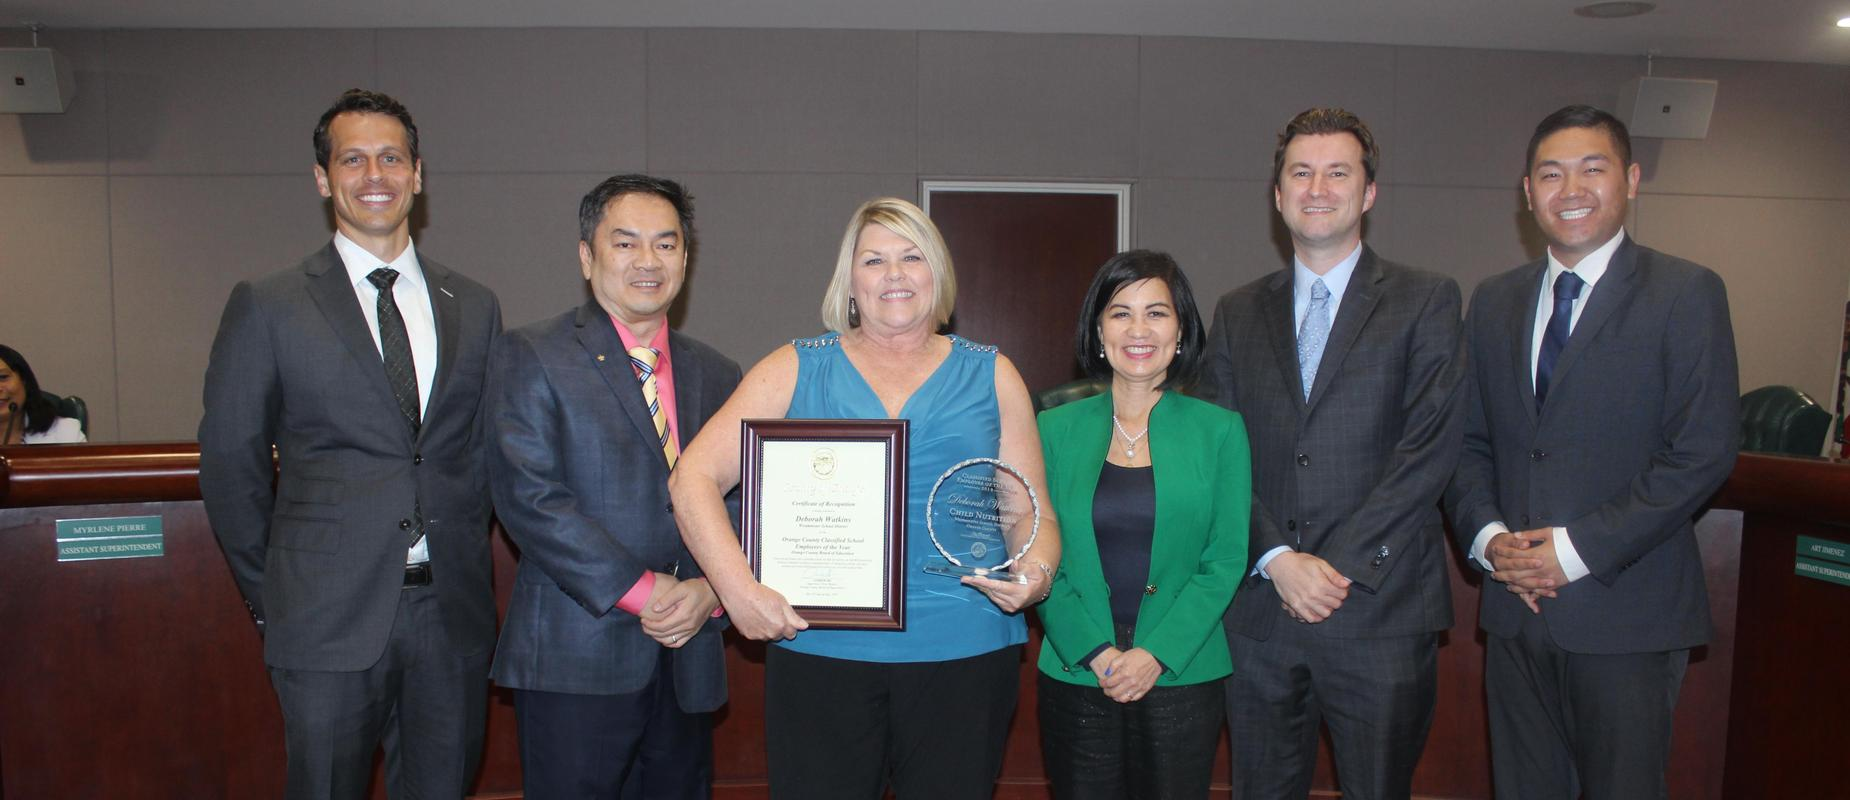 Debbie Watkins California Classified School Employee of the Year